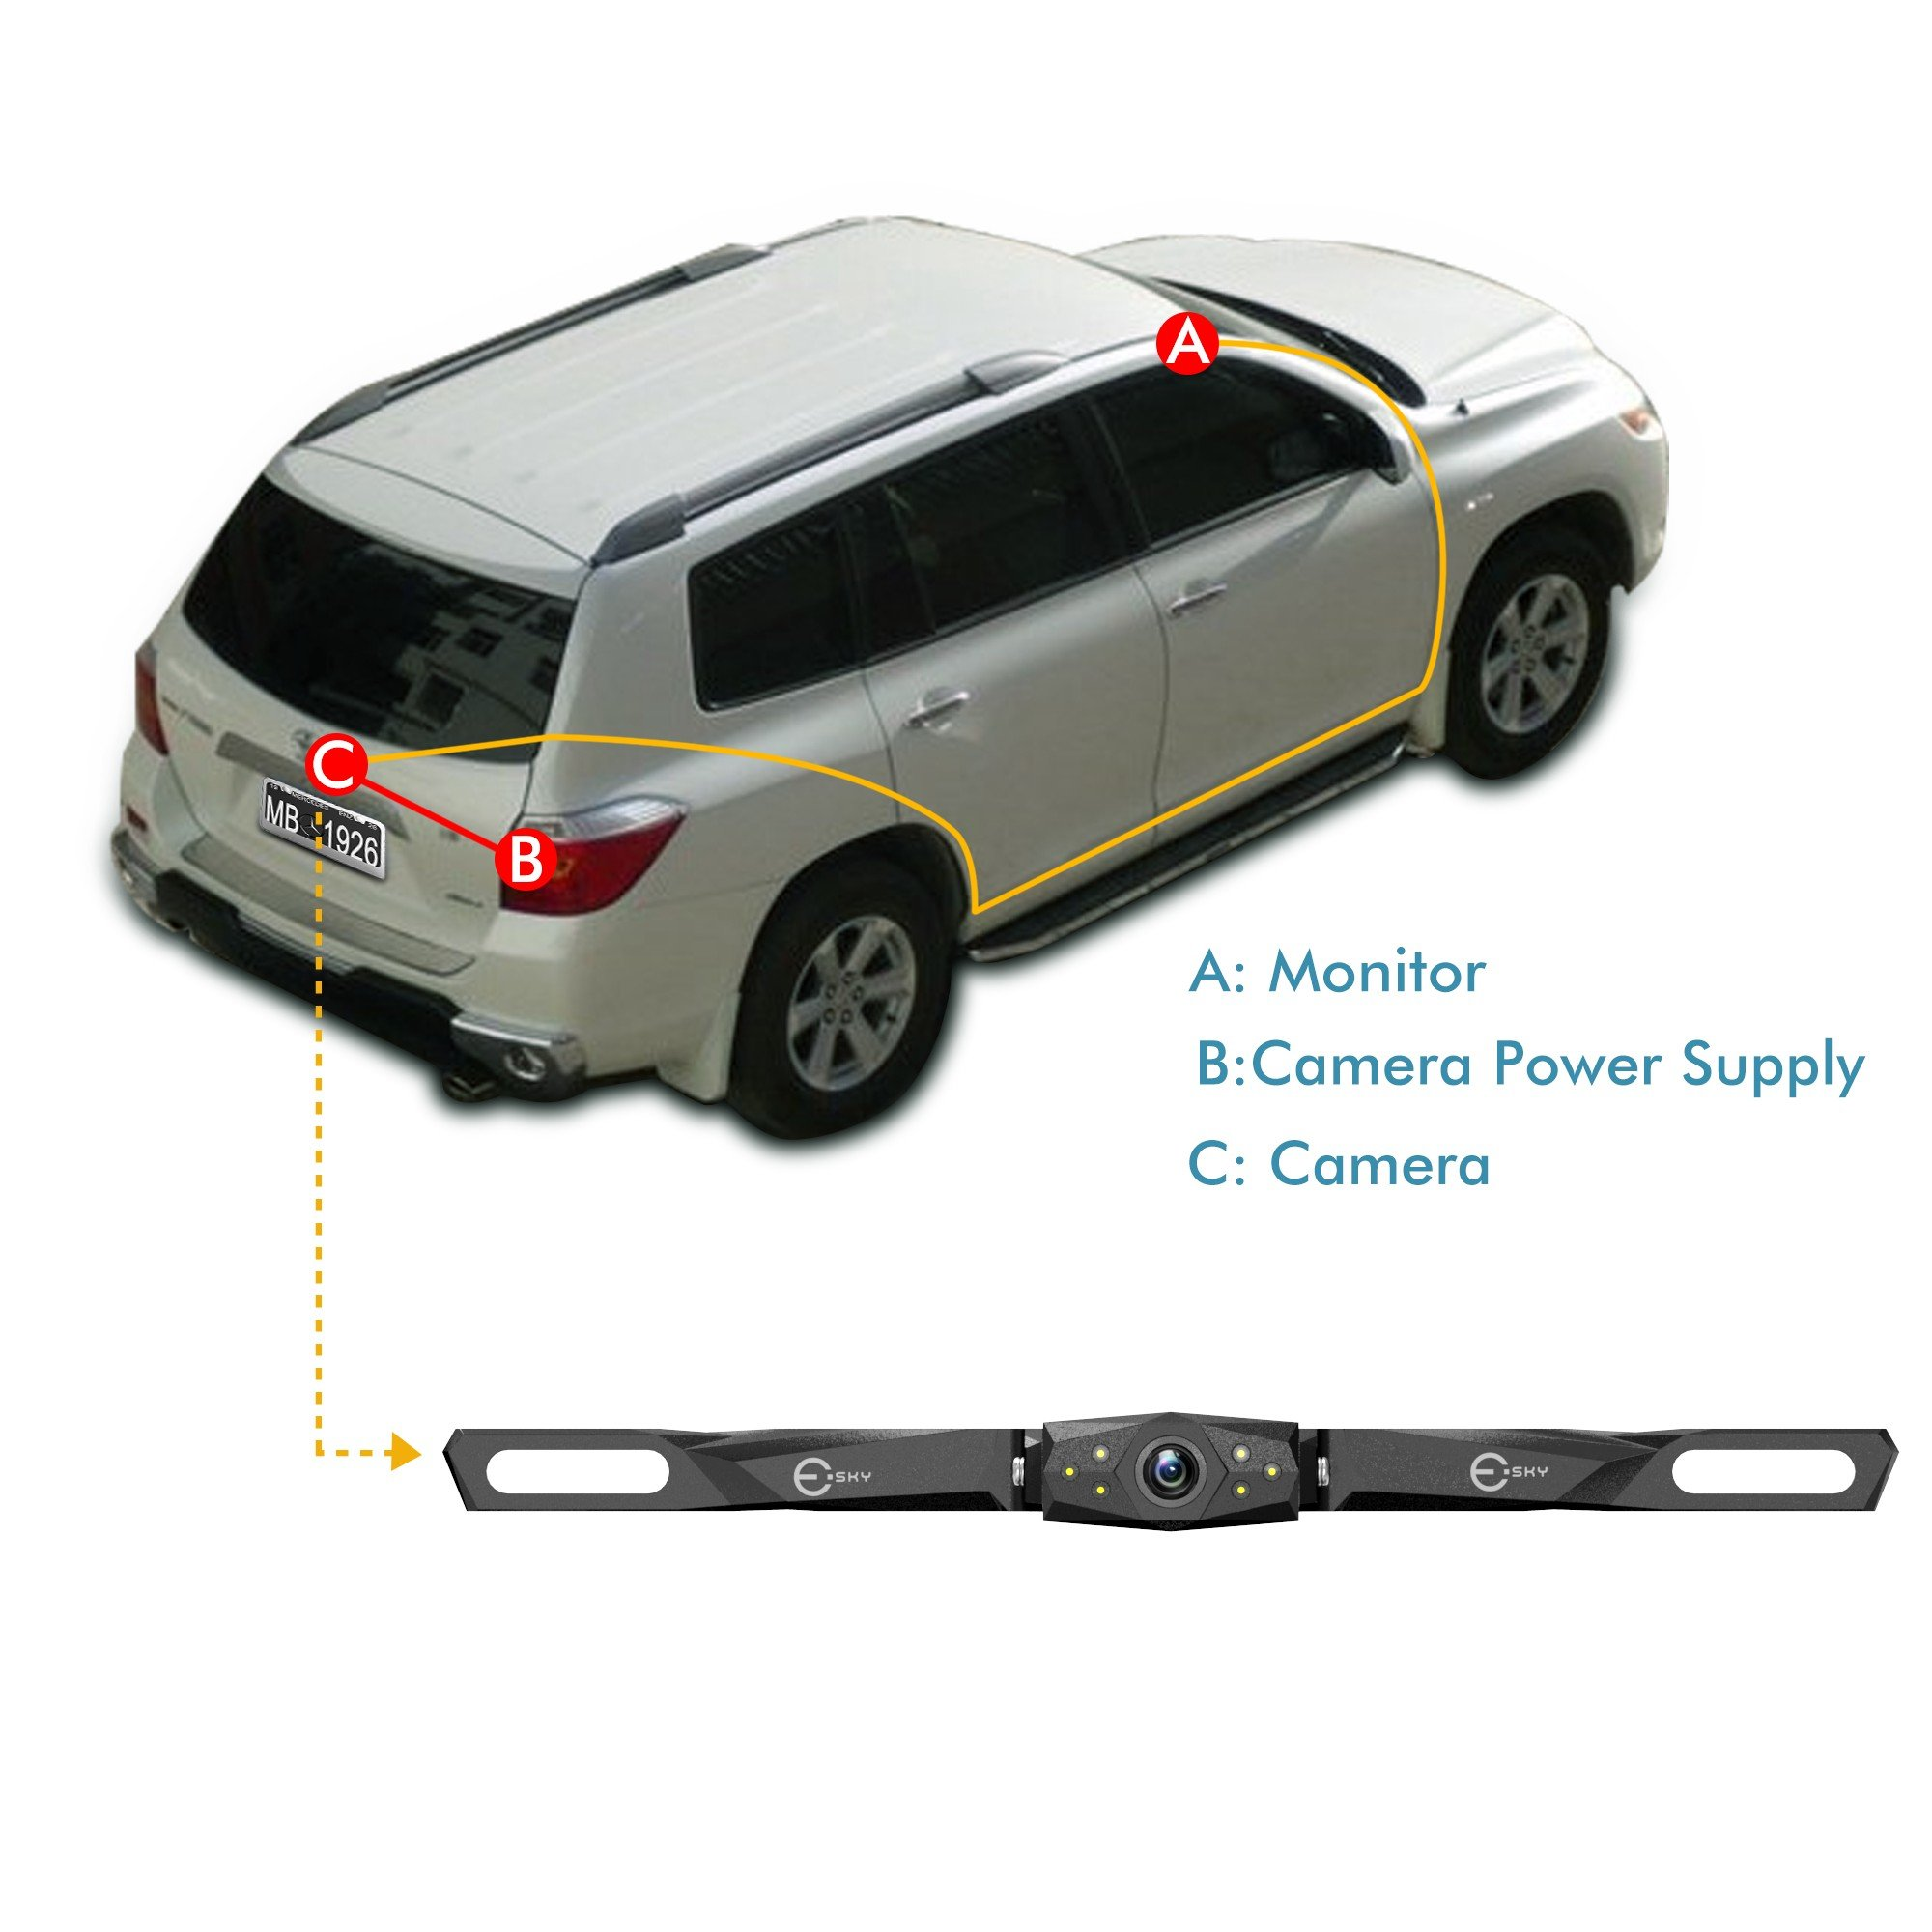 Esky 170 Degree HD CMOS Car Rear View Camera Waterproof High Definition Color Wide Viewing Angle License Plate with 6 LED EC180-47 by Esky (Image #5)